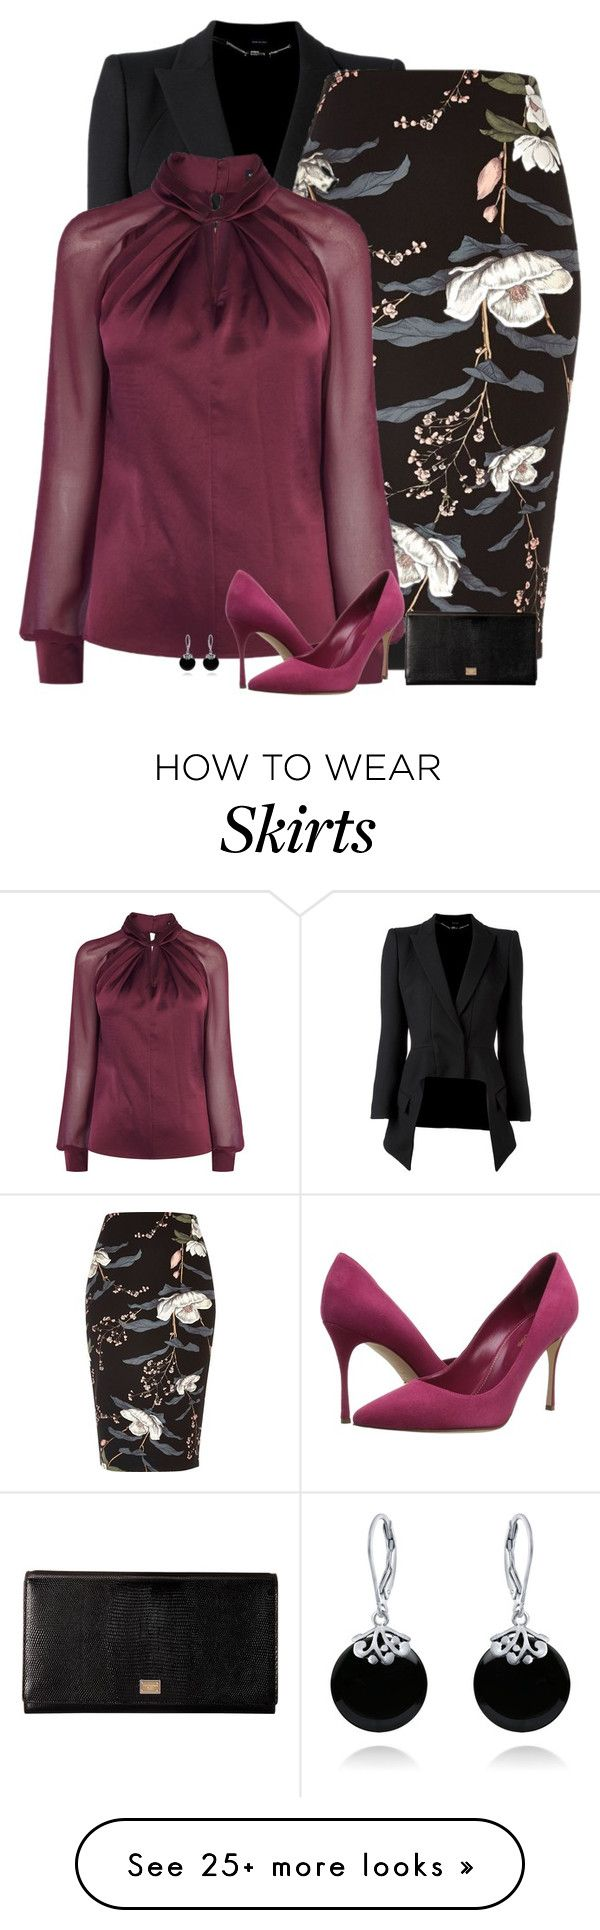 """""""raspberry"""" by divacrafts on Polyvore featuring Alexander McQueen, River Island, Sergio Rossi, Dolce&Gabbana, Bling Jewelry and Original"""